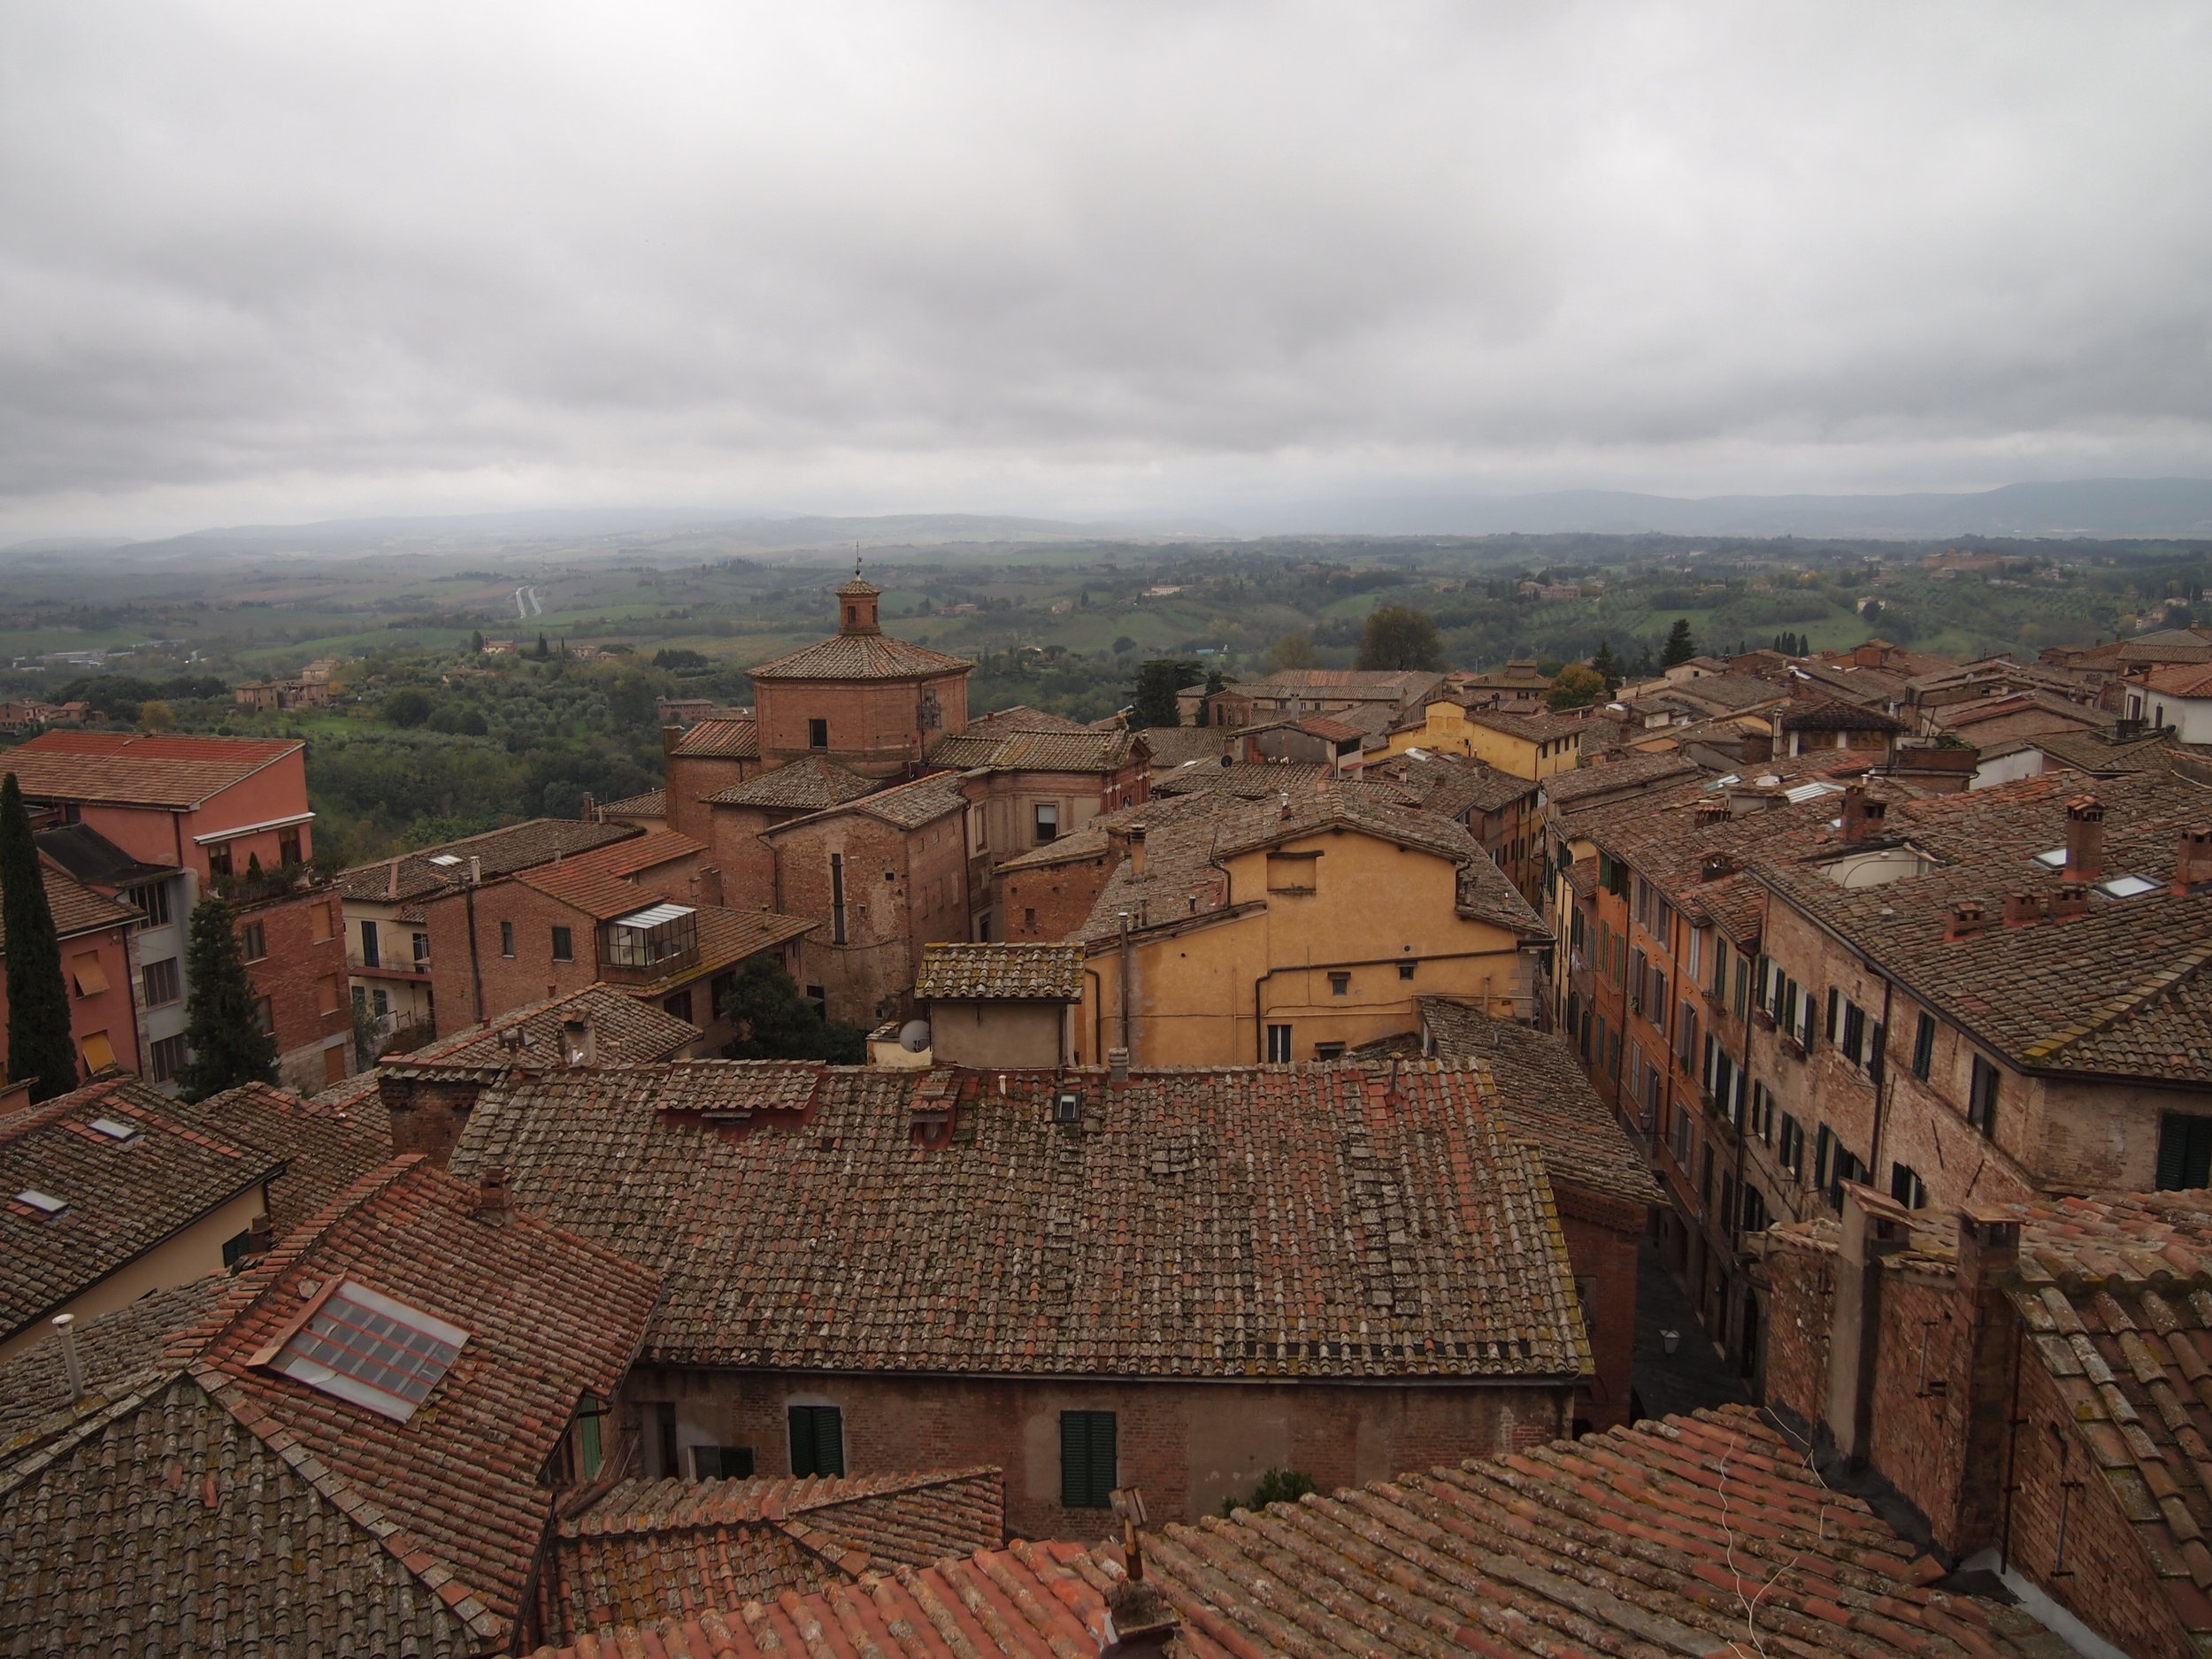 from-siena-art-institute_8181281735_o.jpg